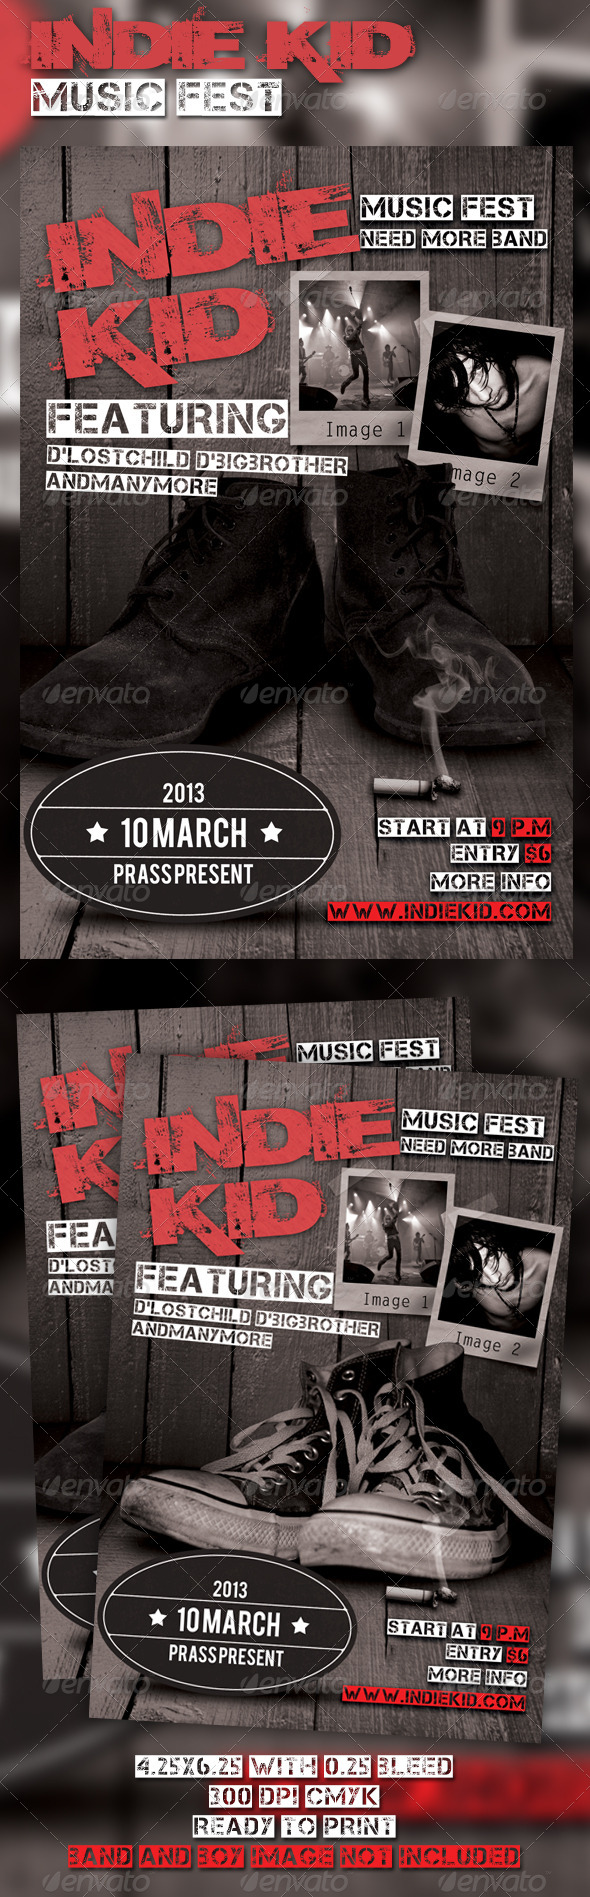 Indie Kid Music Fest Flyer Template - Clubs & Parties Events